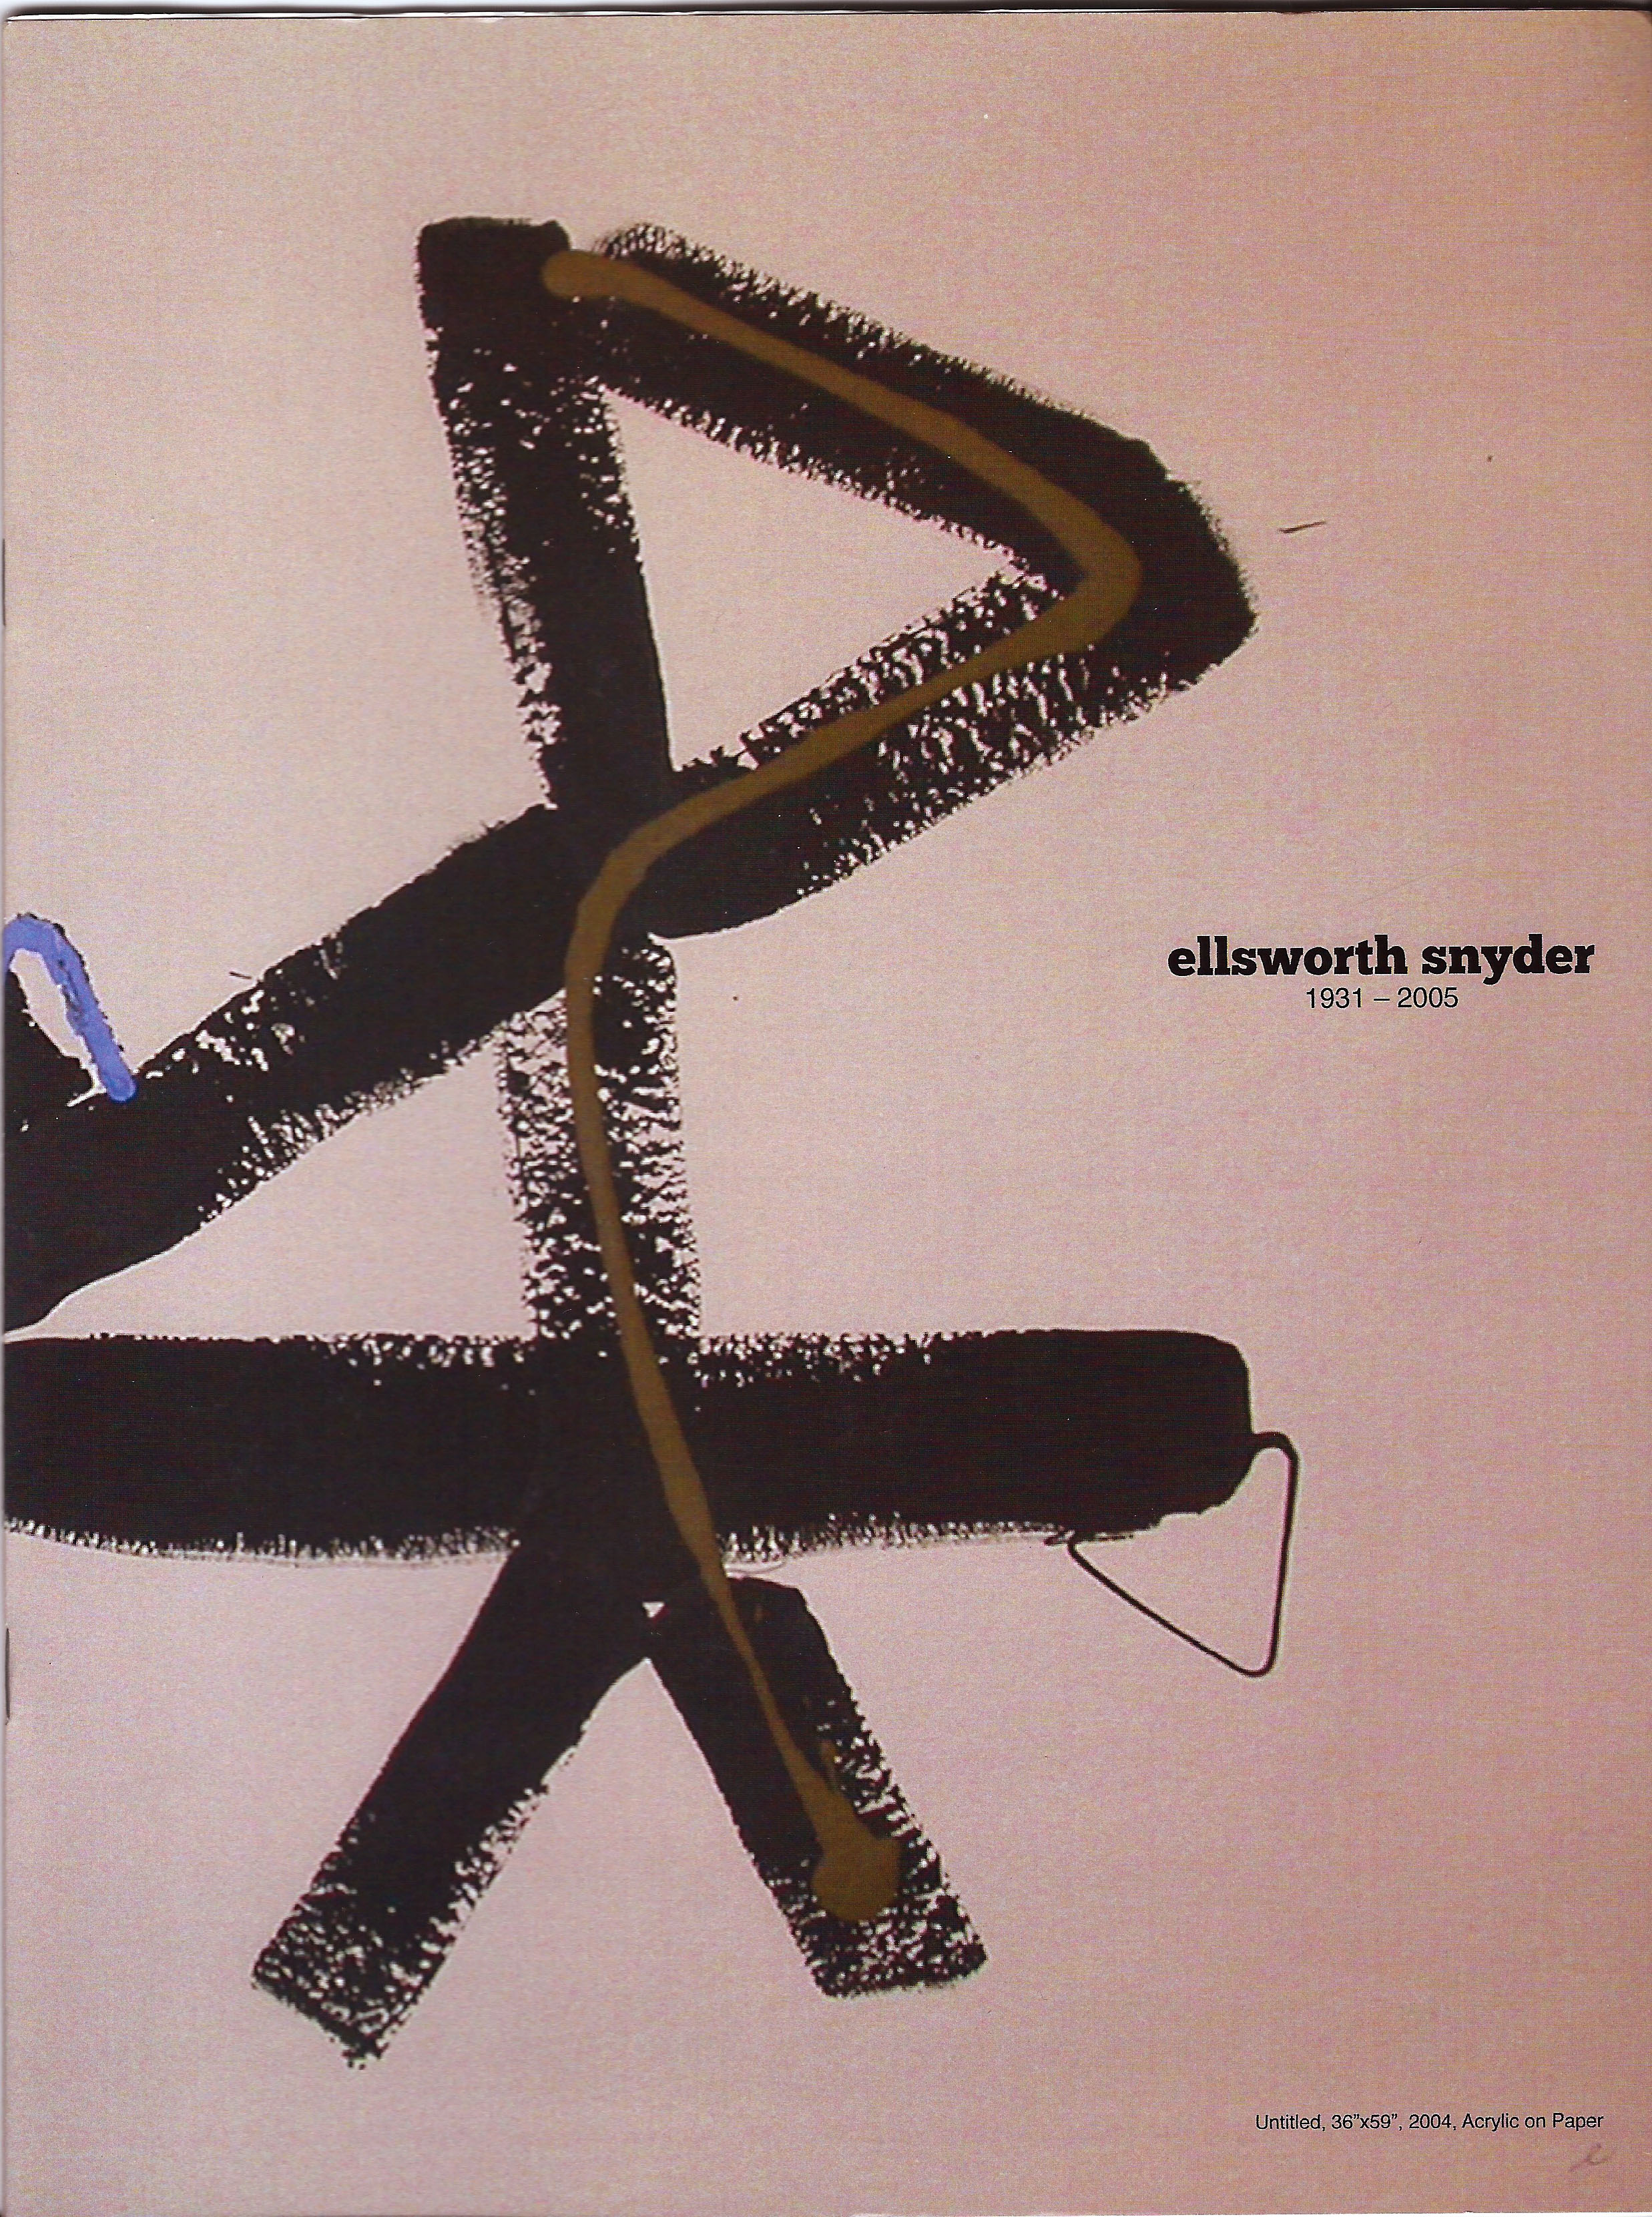 1931 - 2005 | ellsworth snyder